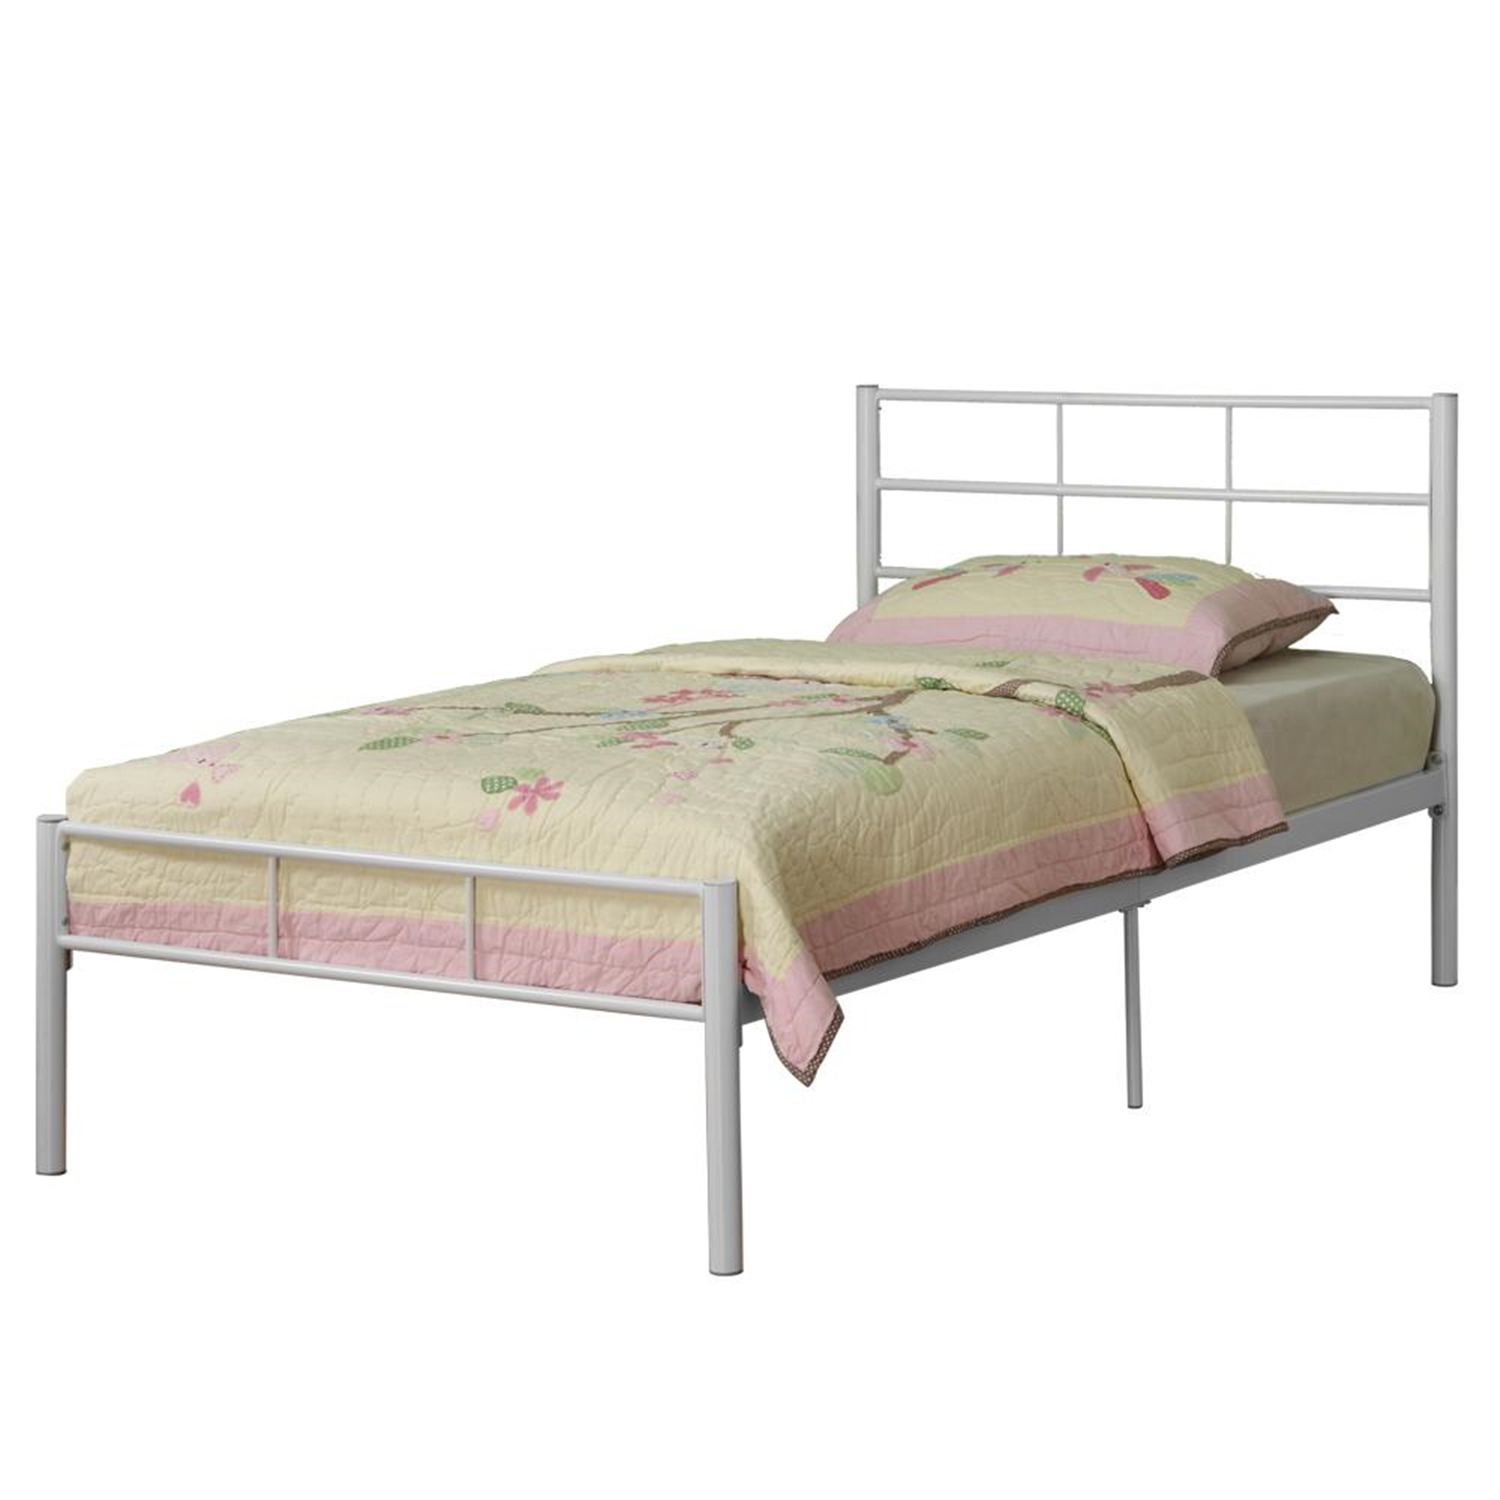 Twin Metal Bed Frame 28 Images New Twin Saga Metal Bed